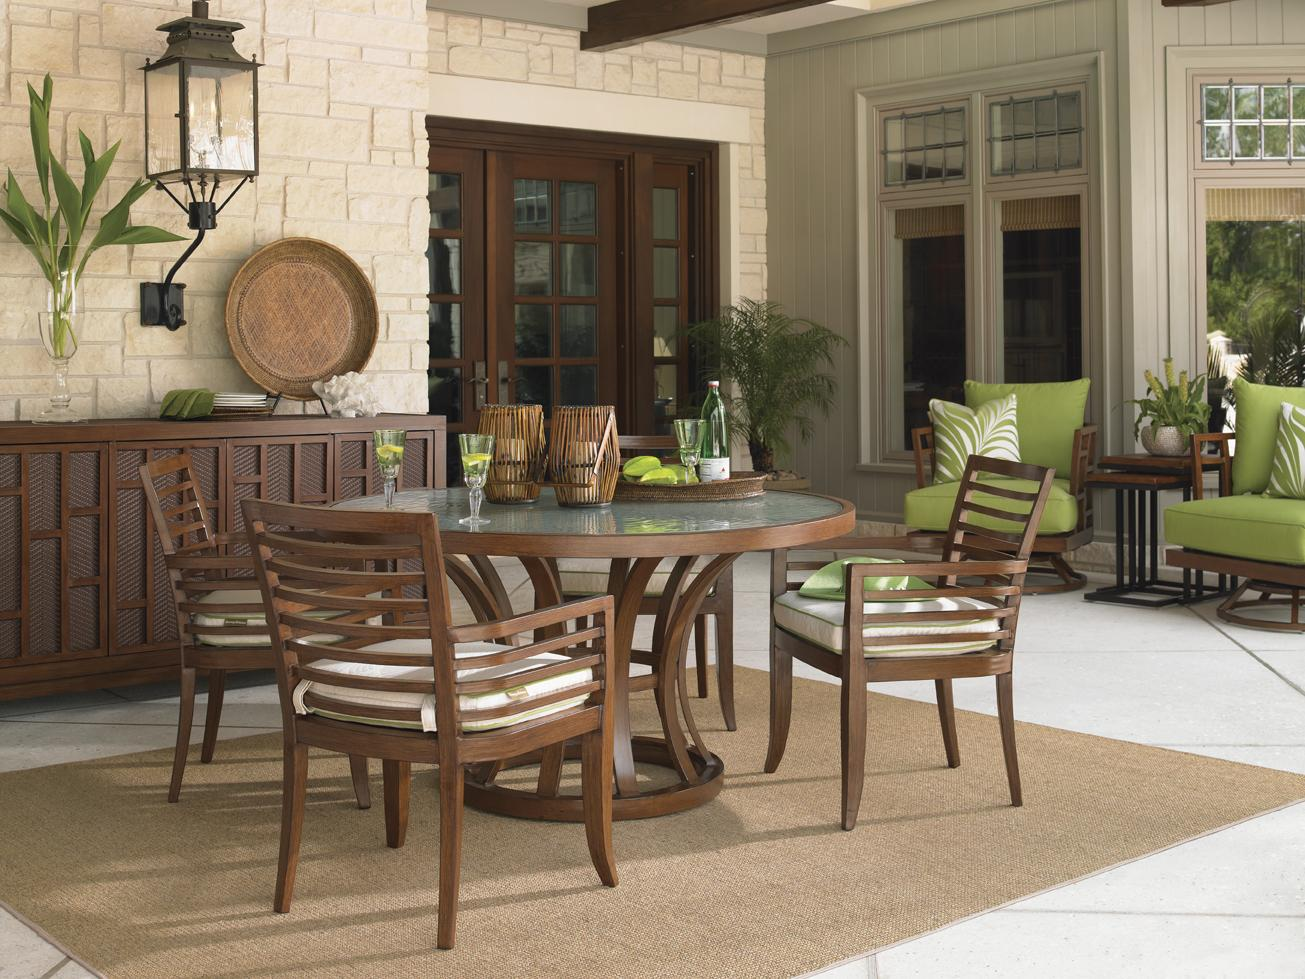 tommy bahama outdoor living baer 39 s furniture tommy bahama outdoor